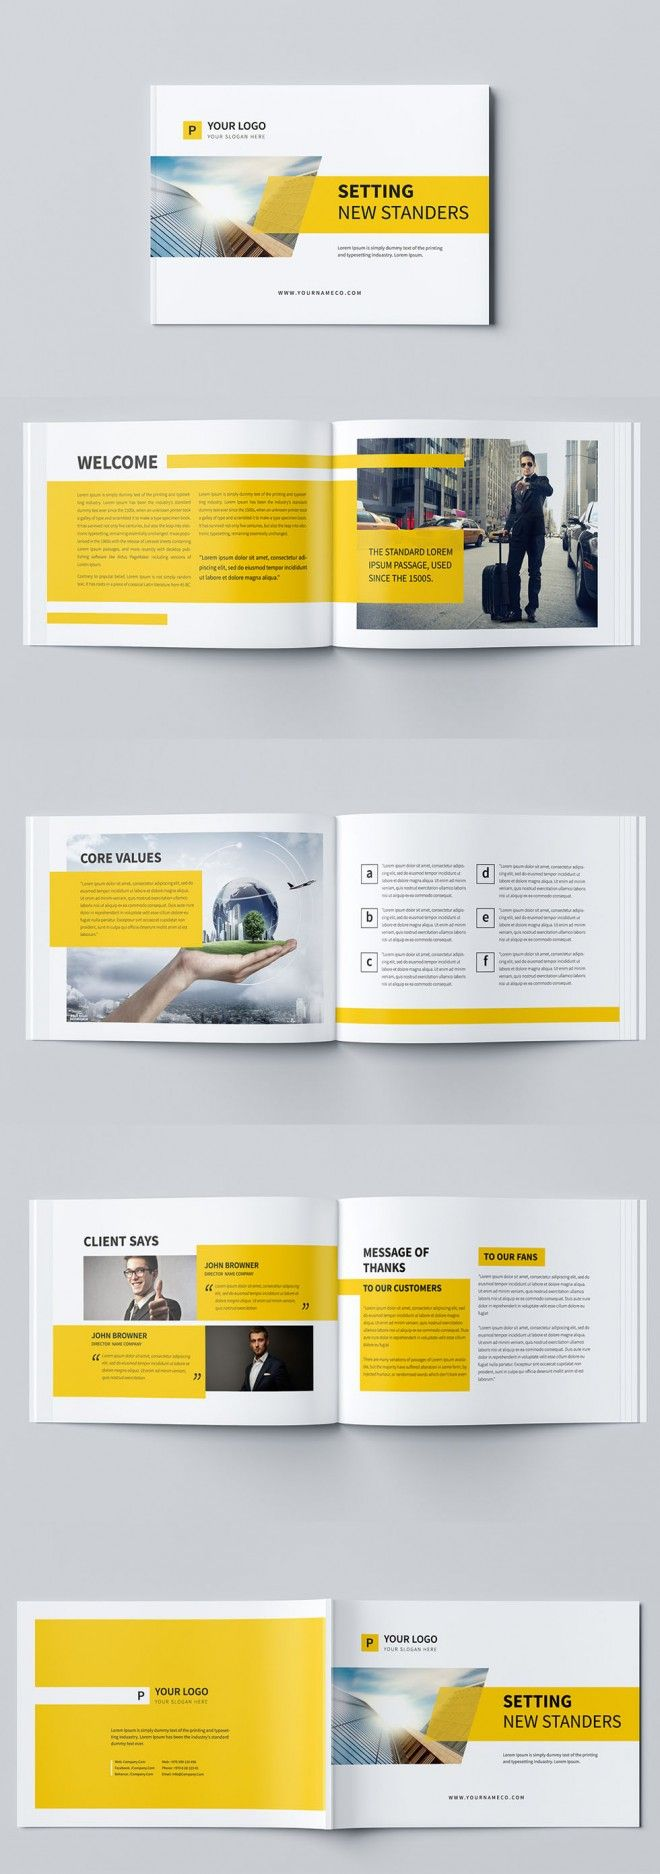 25 best ideas about brochure design on pinterest for Top product design companies